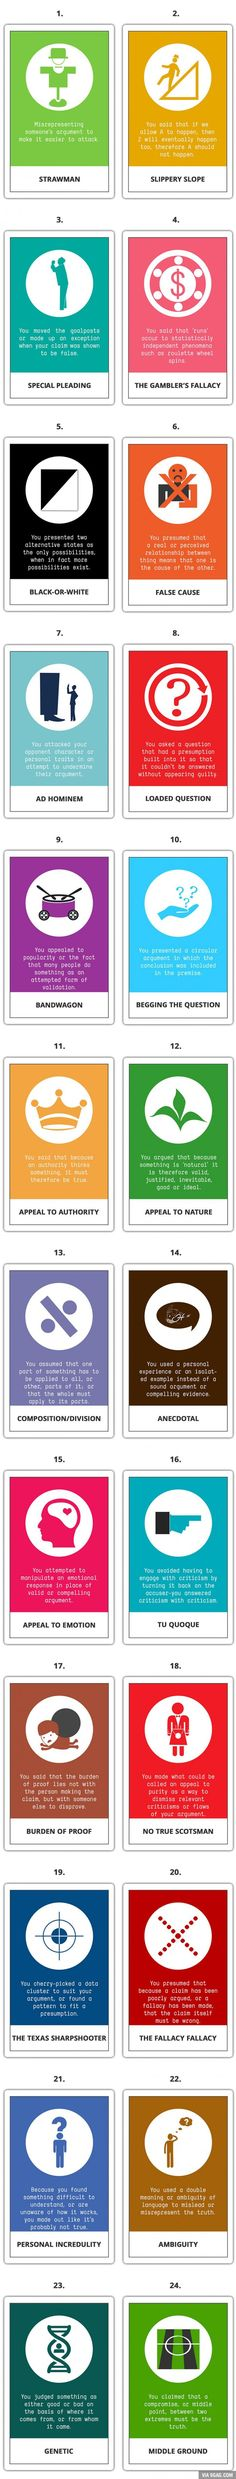 24 Most Common Logical Fallacies That You Should Know And Avoid - 9GAG